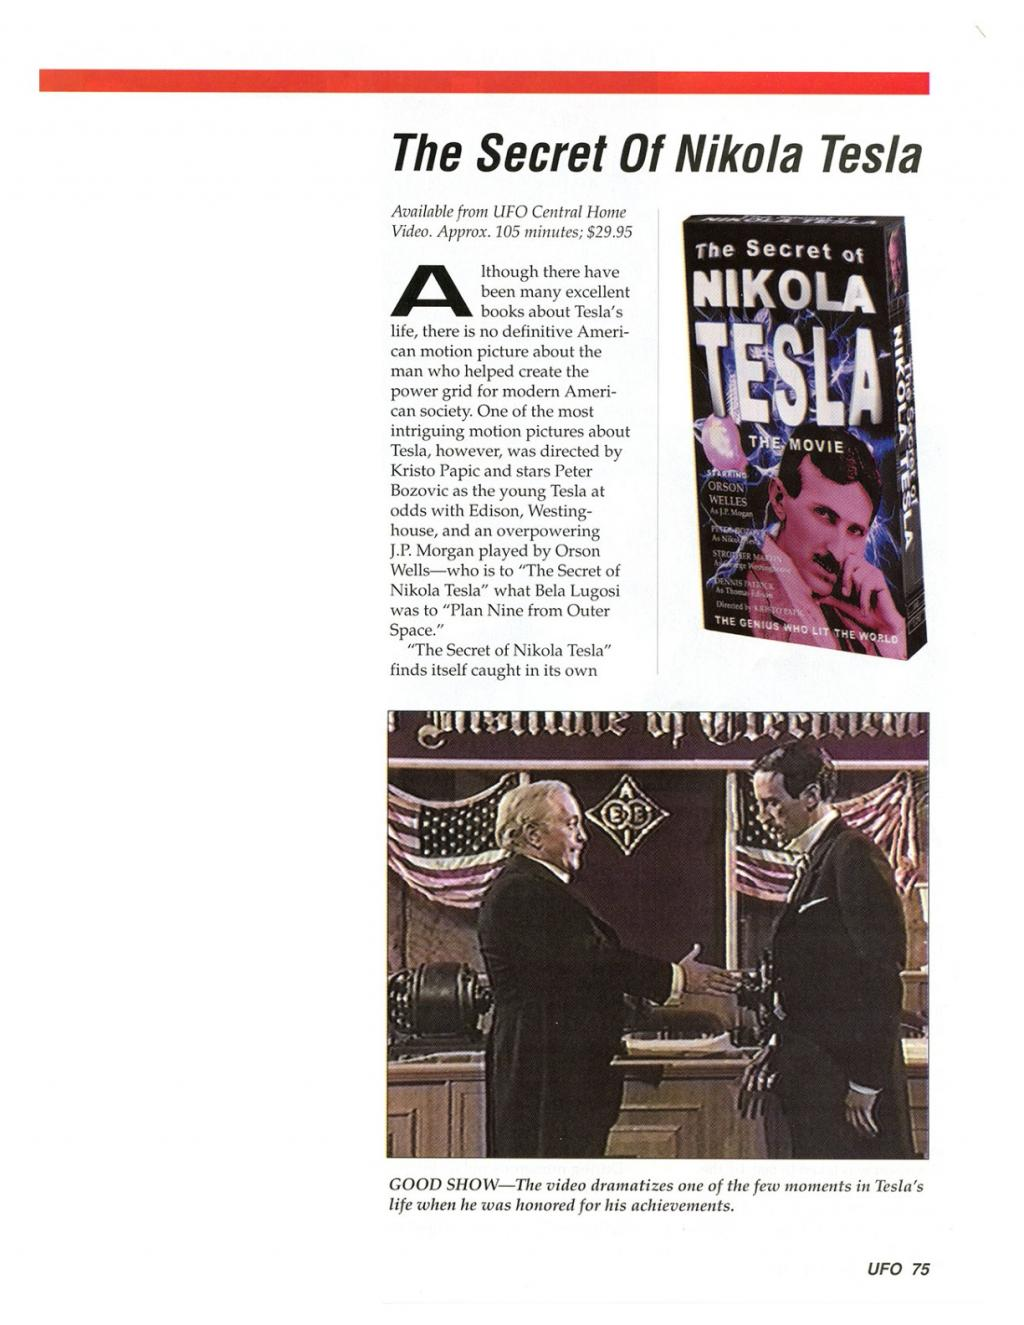 Preview of The Secret of Nikola Tesla article